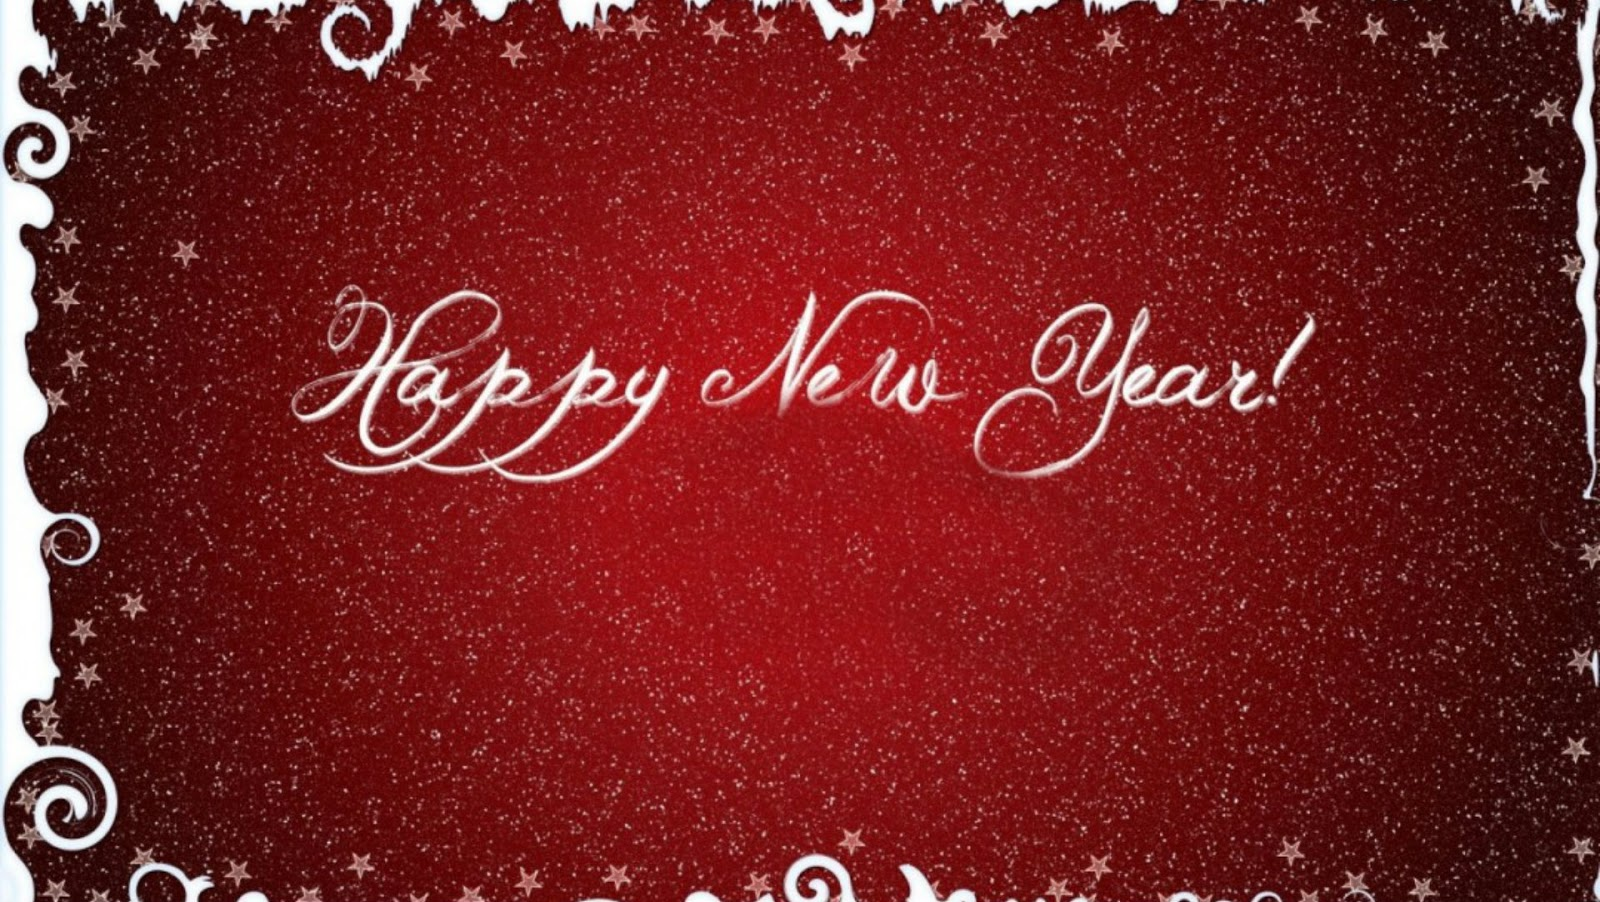 Happy New Year 2019 Greetings Images For Whatsapp And Facebook In Hd